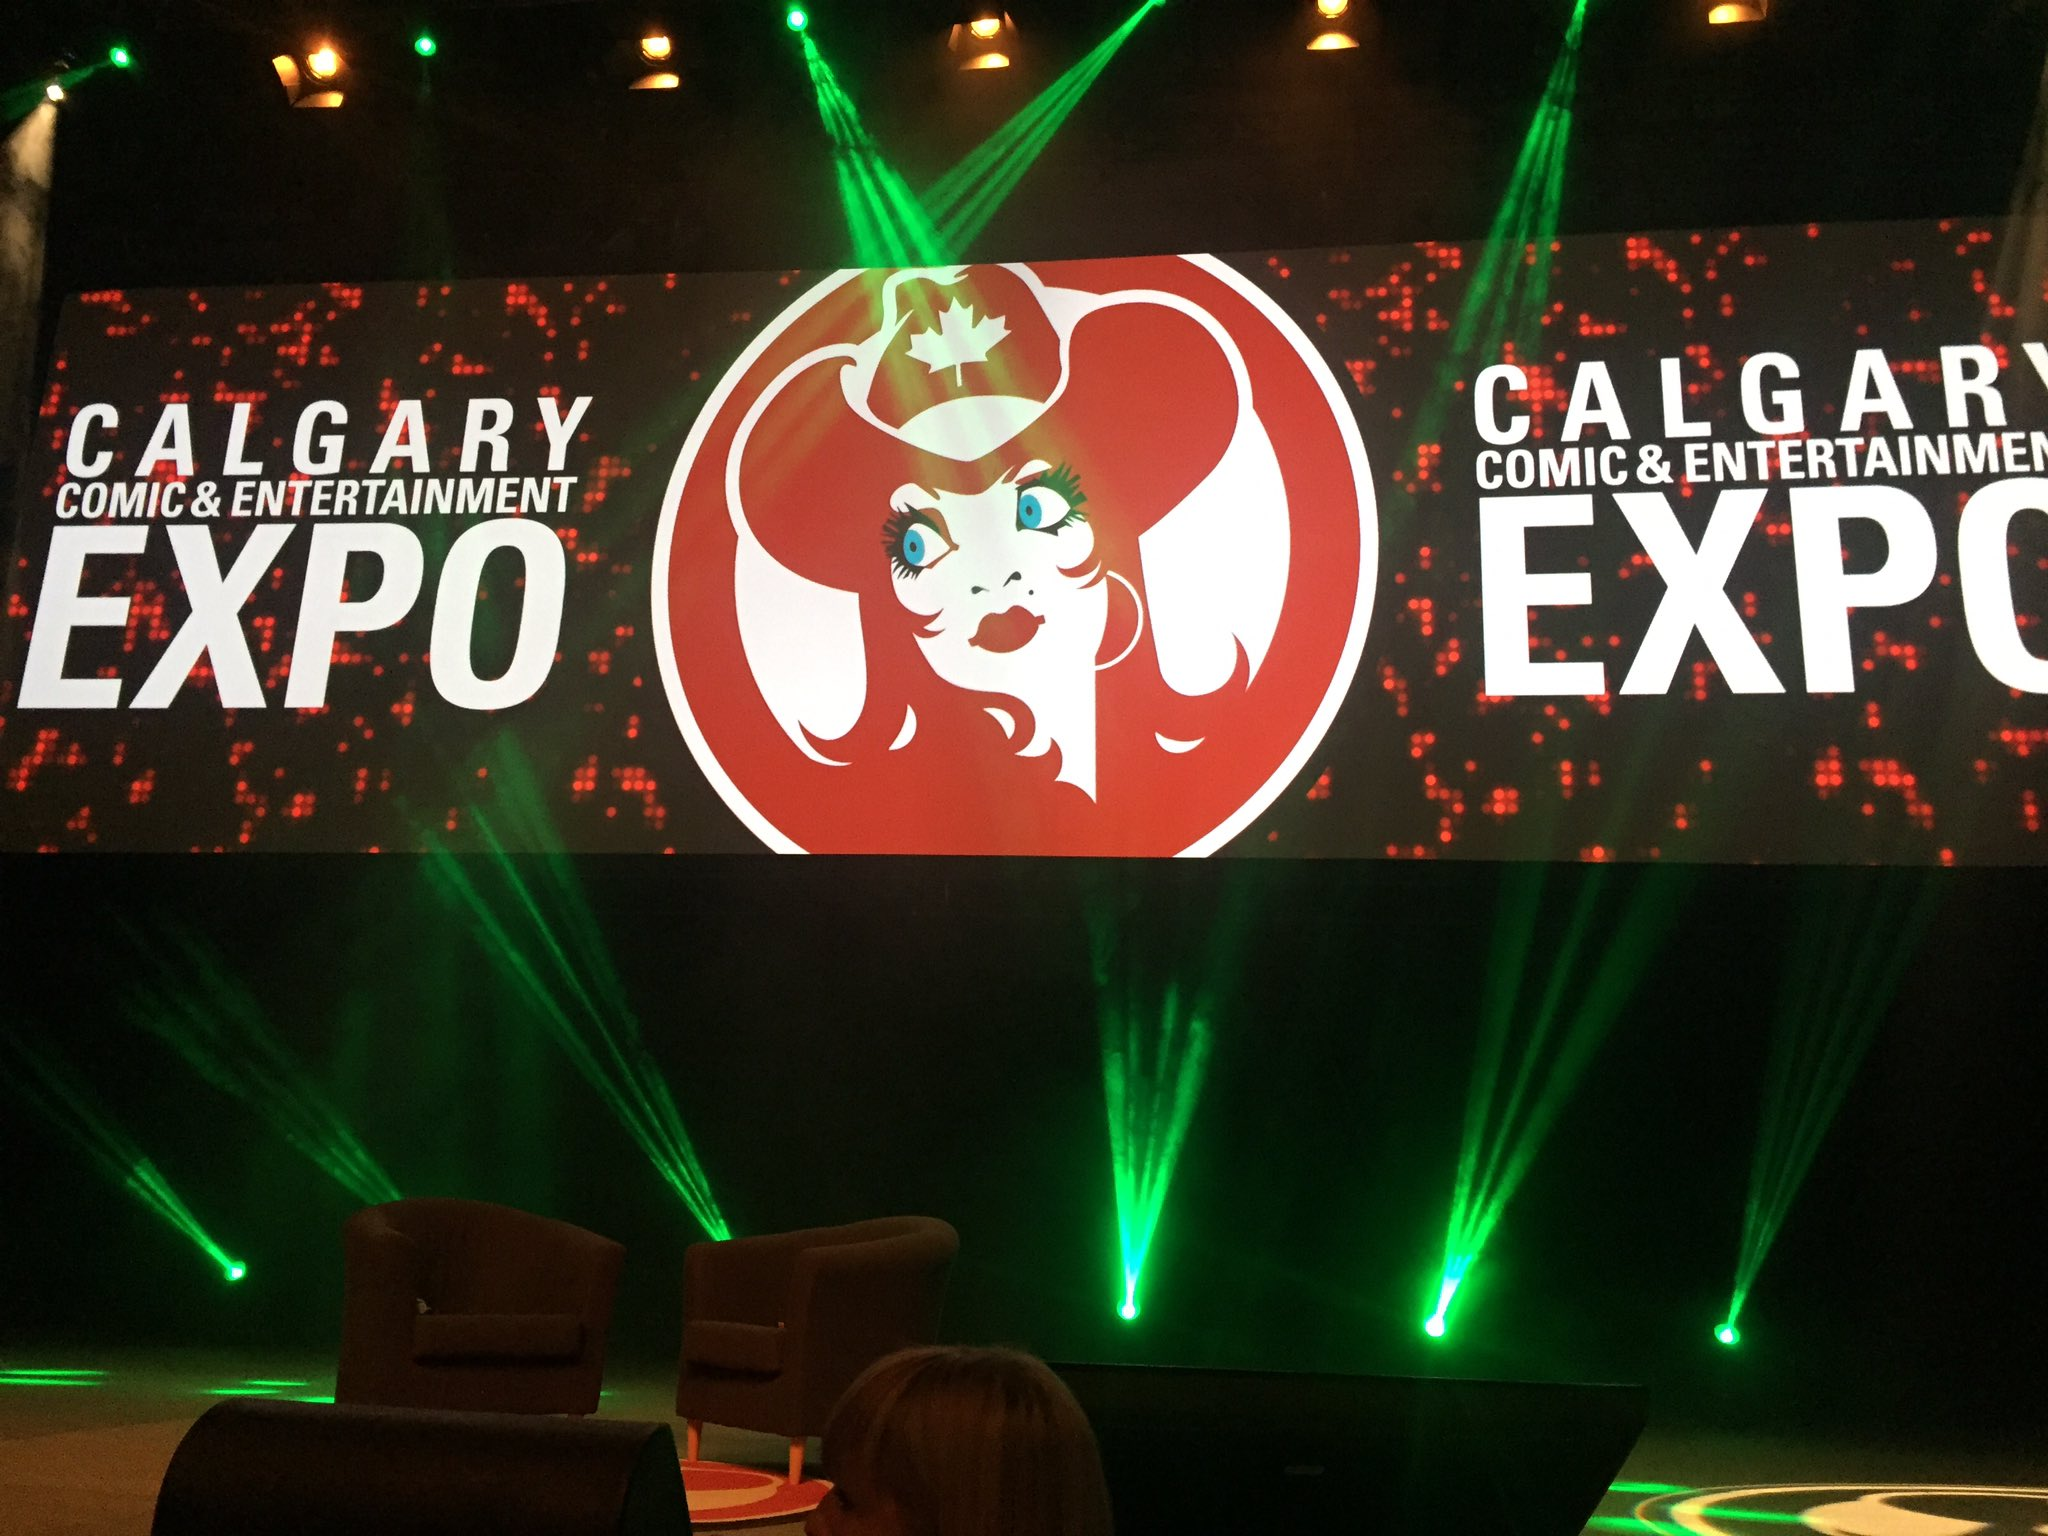 Peter Capaldi - live on stage soon! #CalgaryExpo #PCapinYYC https://t.co/ADuCas34JU